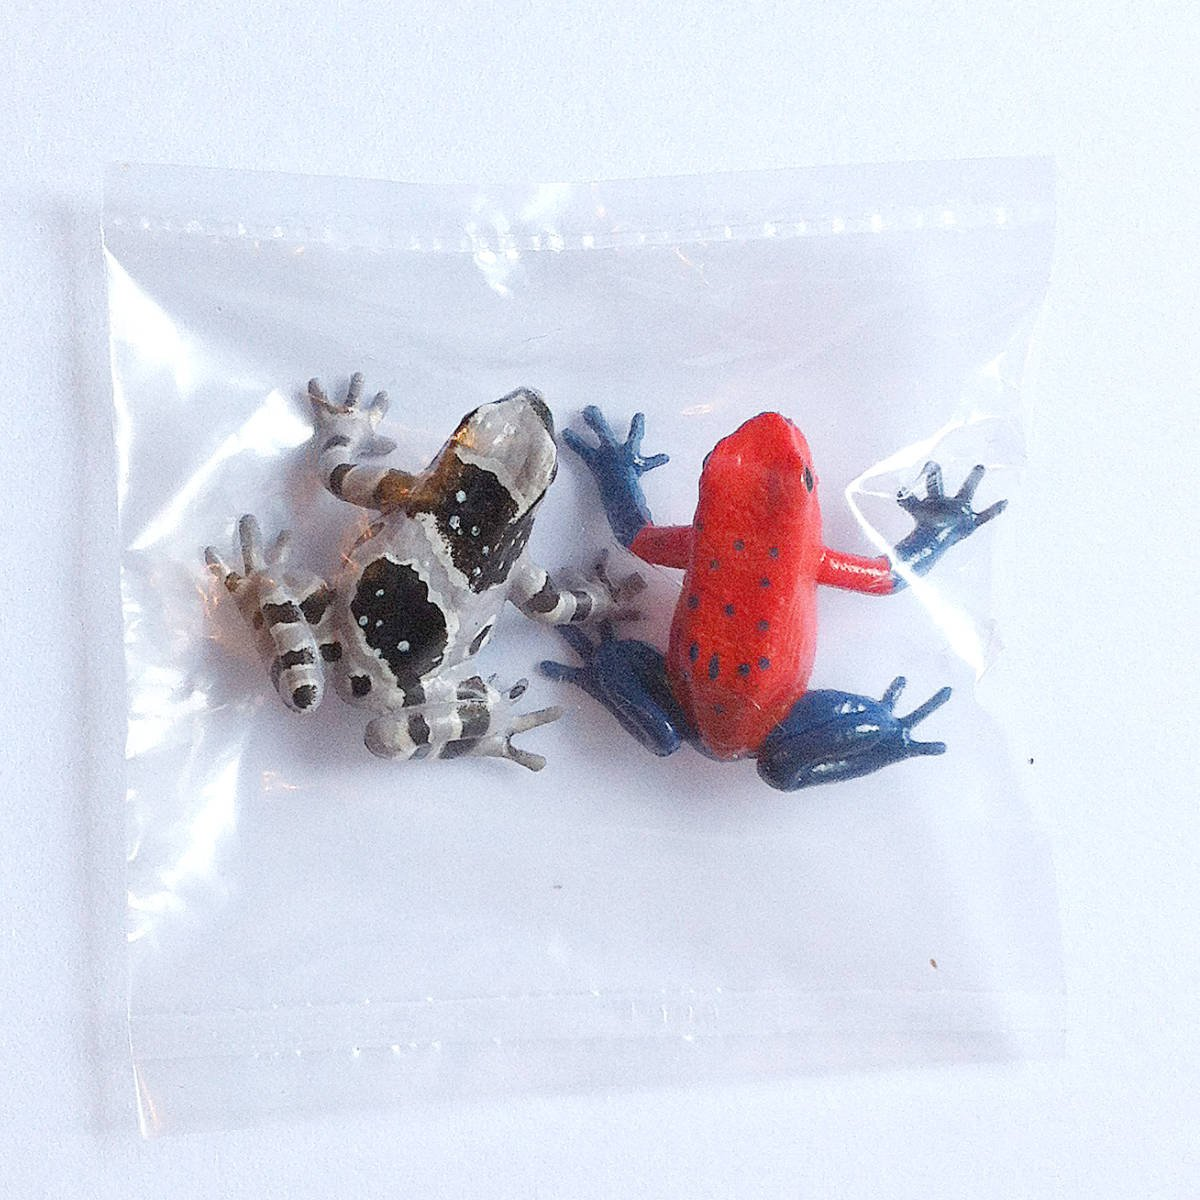 Primary Colors Amphibian Frog Picture Book - Strawberry Poison Dart Frog & Amazon Milk Frog - Yujin